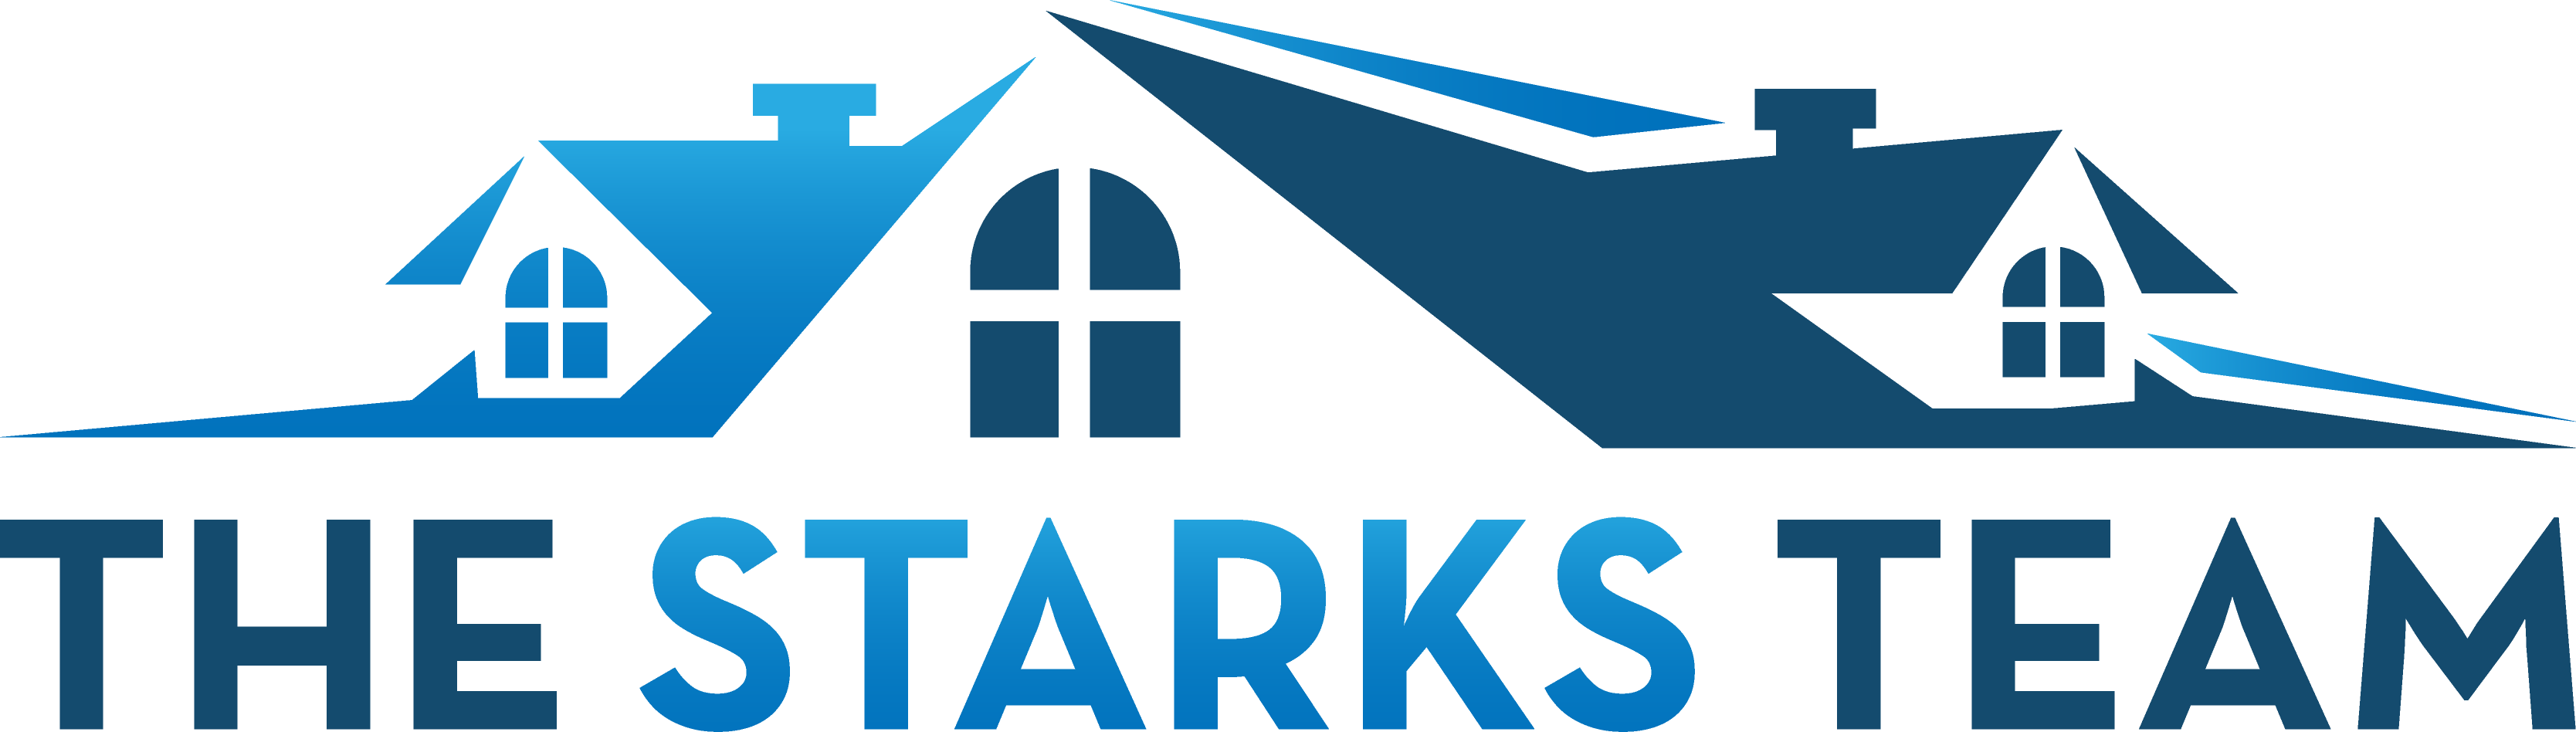 The Starks Team | Allied First Bank, sb